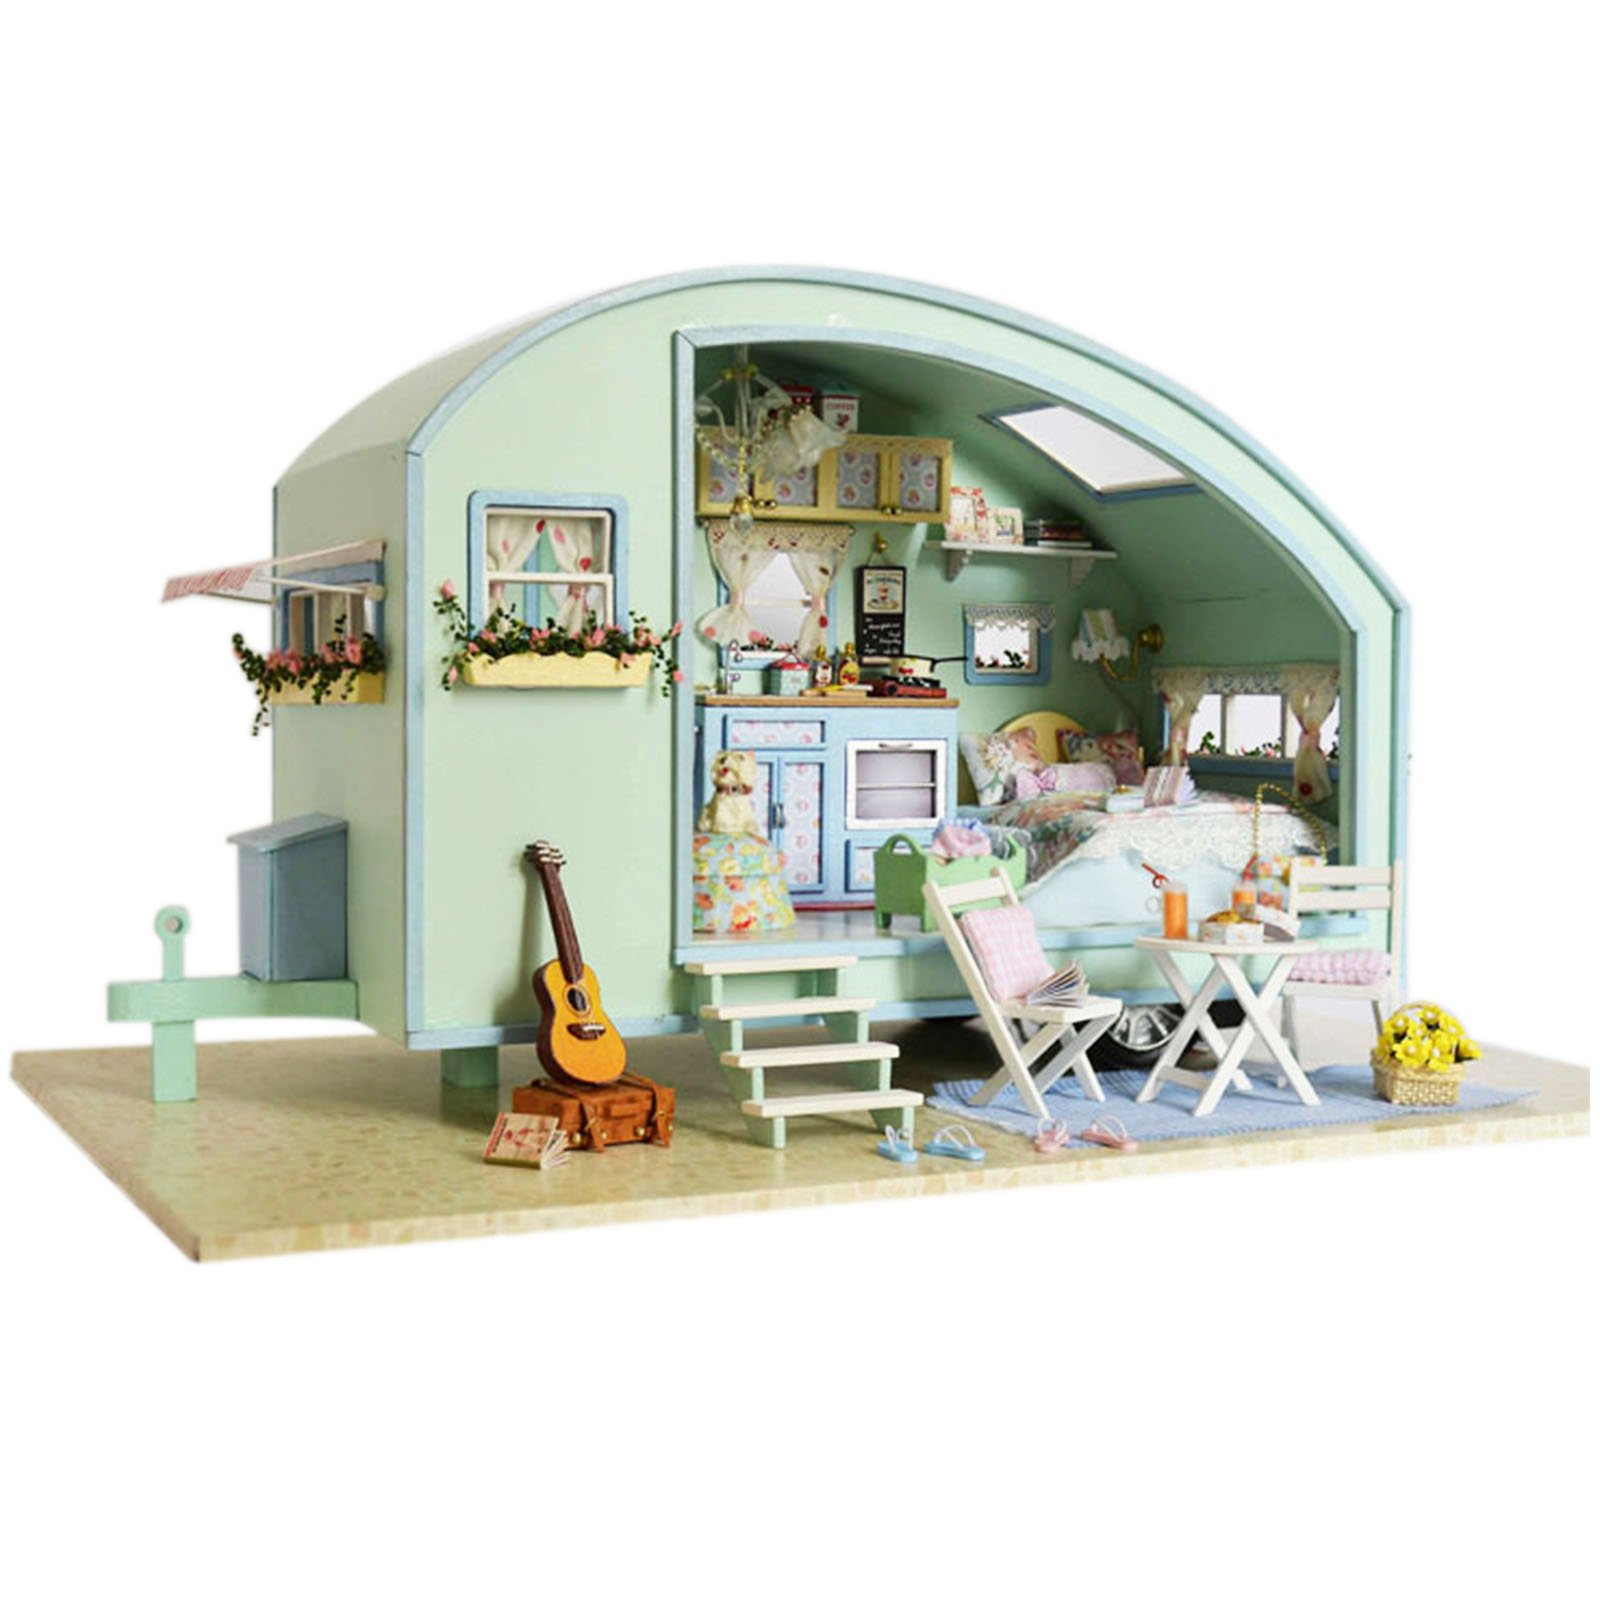 Ogrmar Wooden Dollhouse Miniatures DIY House Kit With Led Light-Time Travel